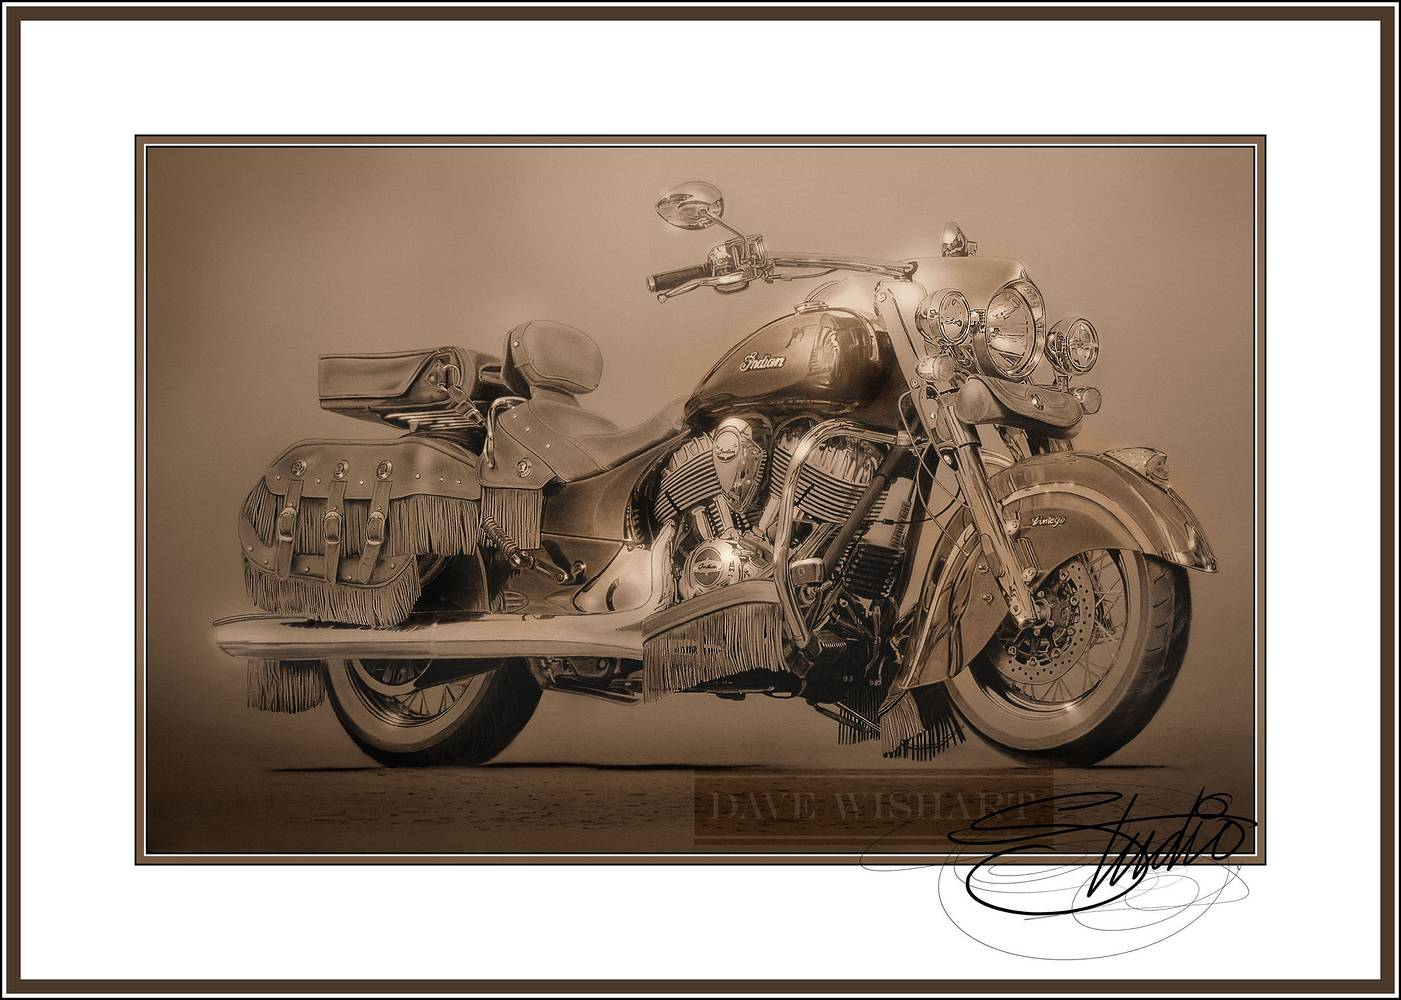 Indian Vintage by Dave Wishart